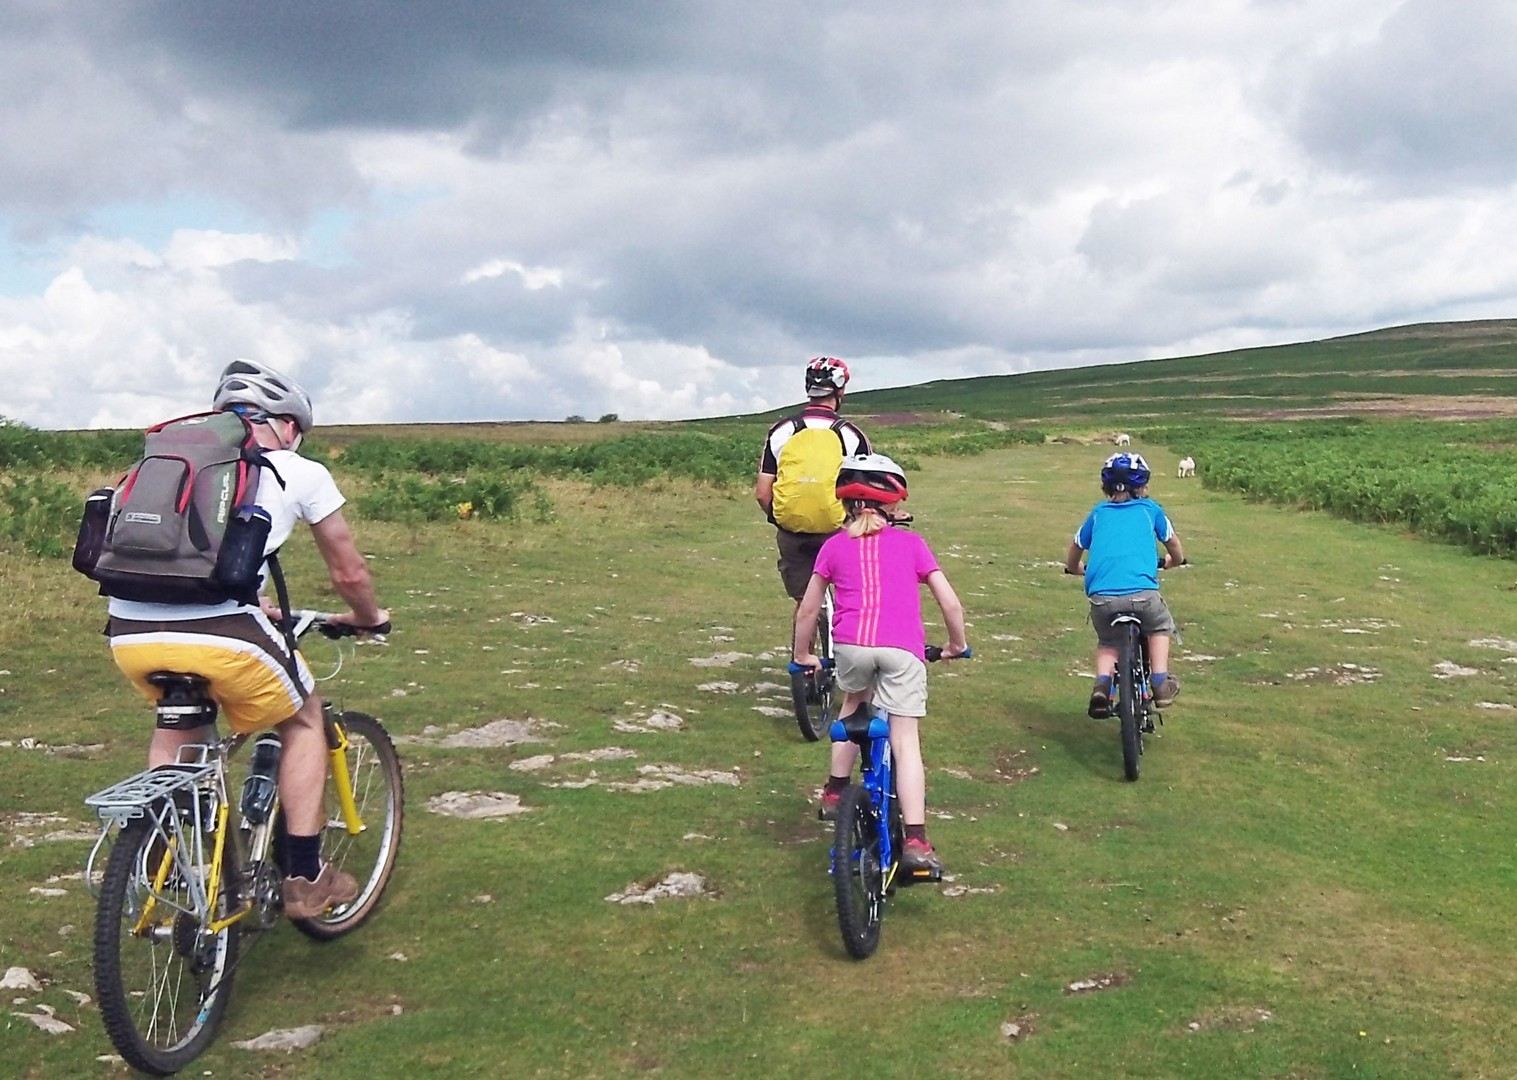 family-cycling-lake-district-guided.jpg - UK - Lake District - Bike Skills - Family Cycling